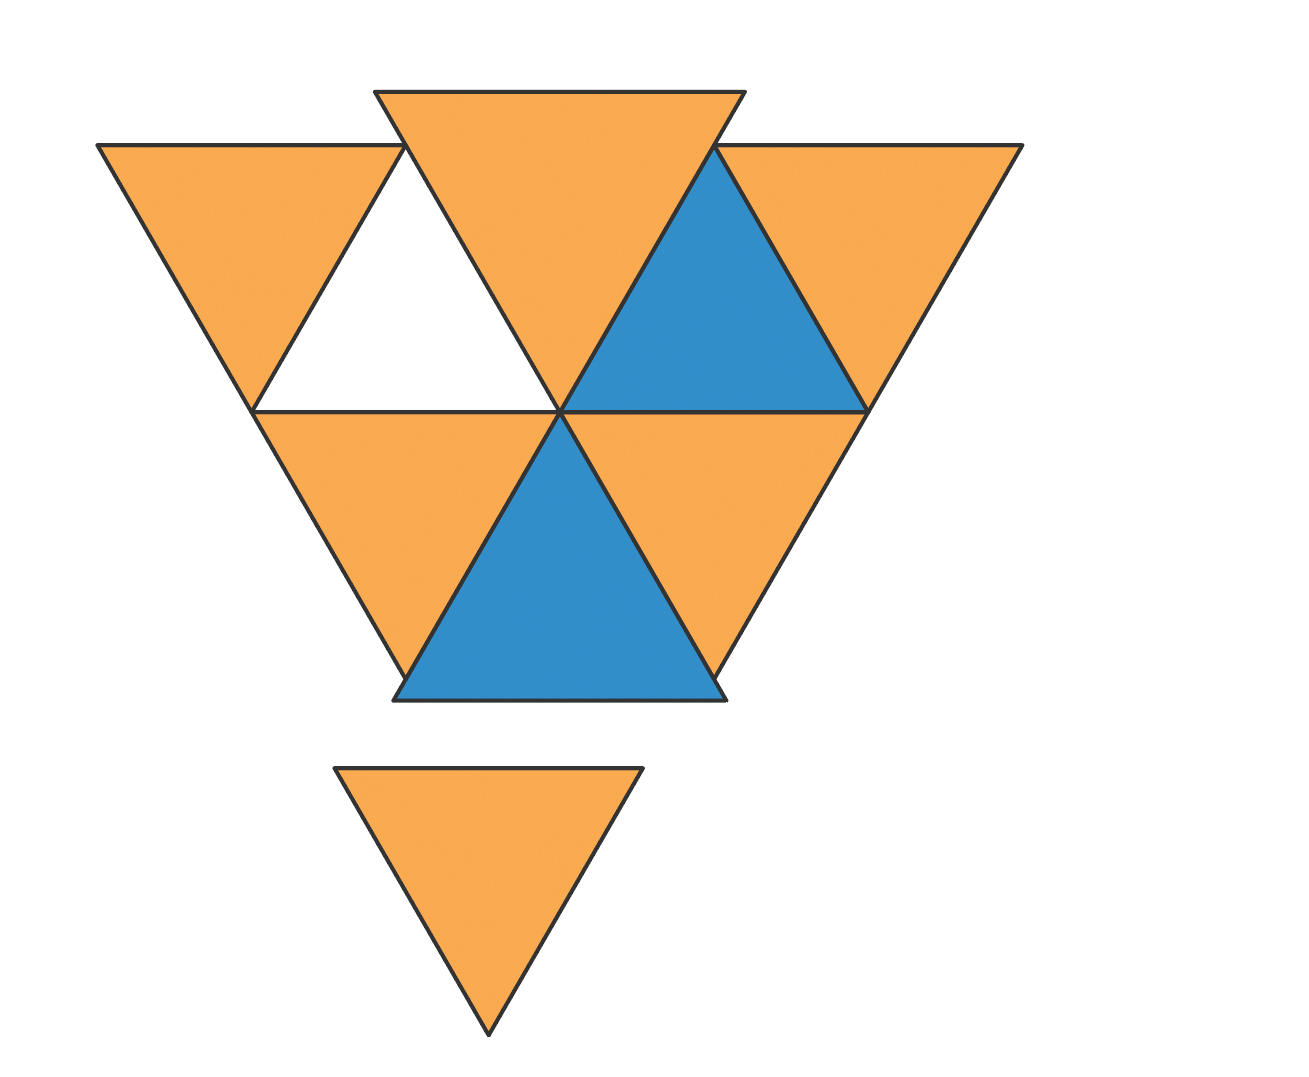 Eight various triangles in Adobe Illustrator starting to look like a face